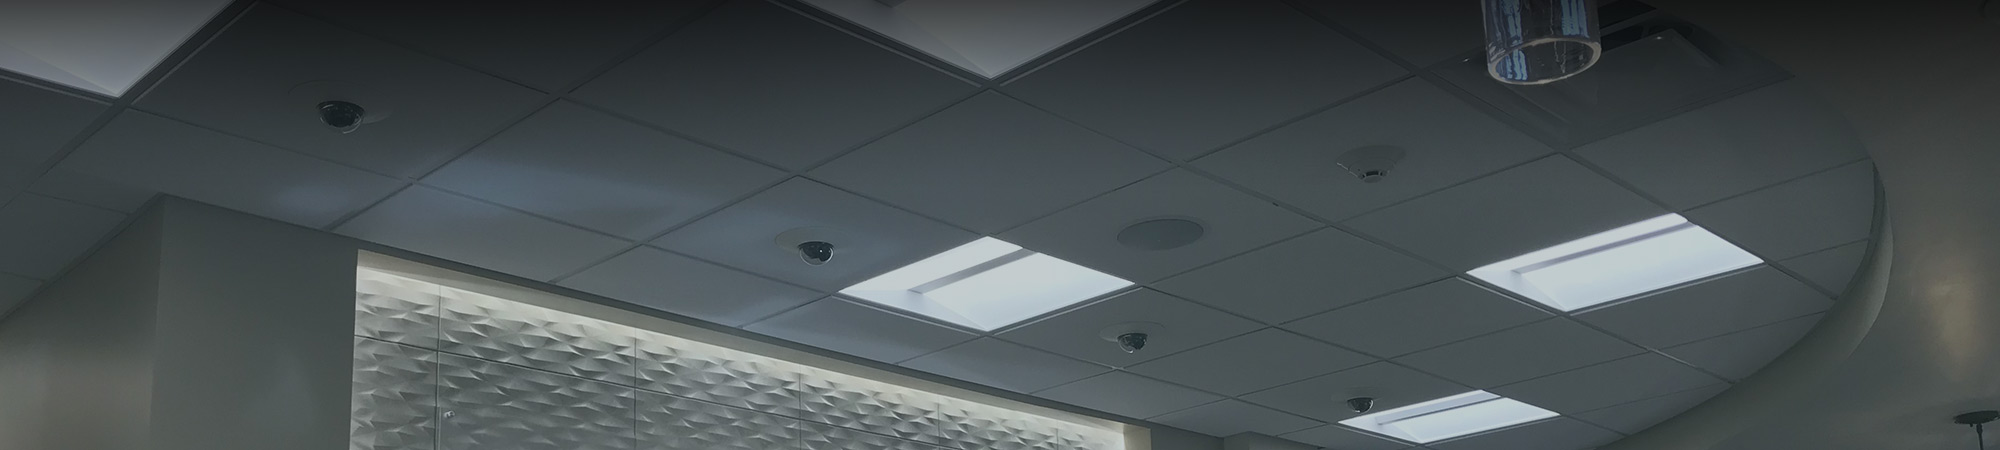 Commercial acoustical tile ceiling with integrated security cameras, lights, sprinkler heads, and speakers in a medical facility